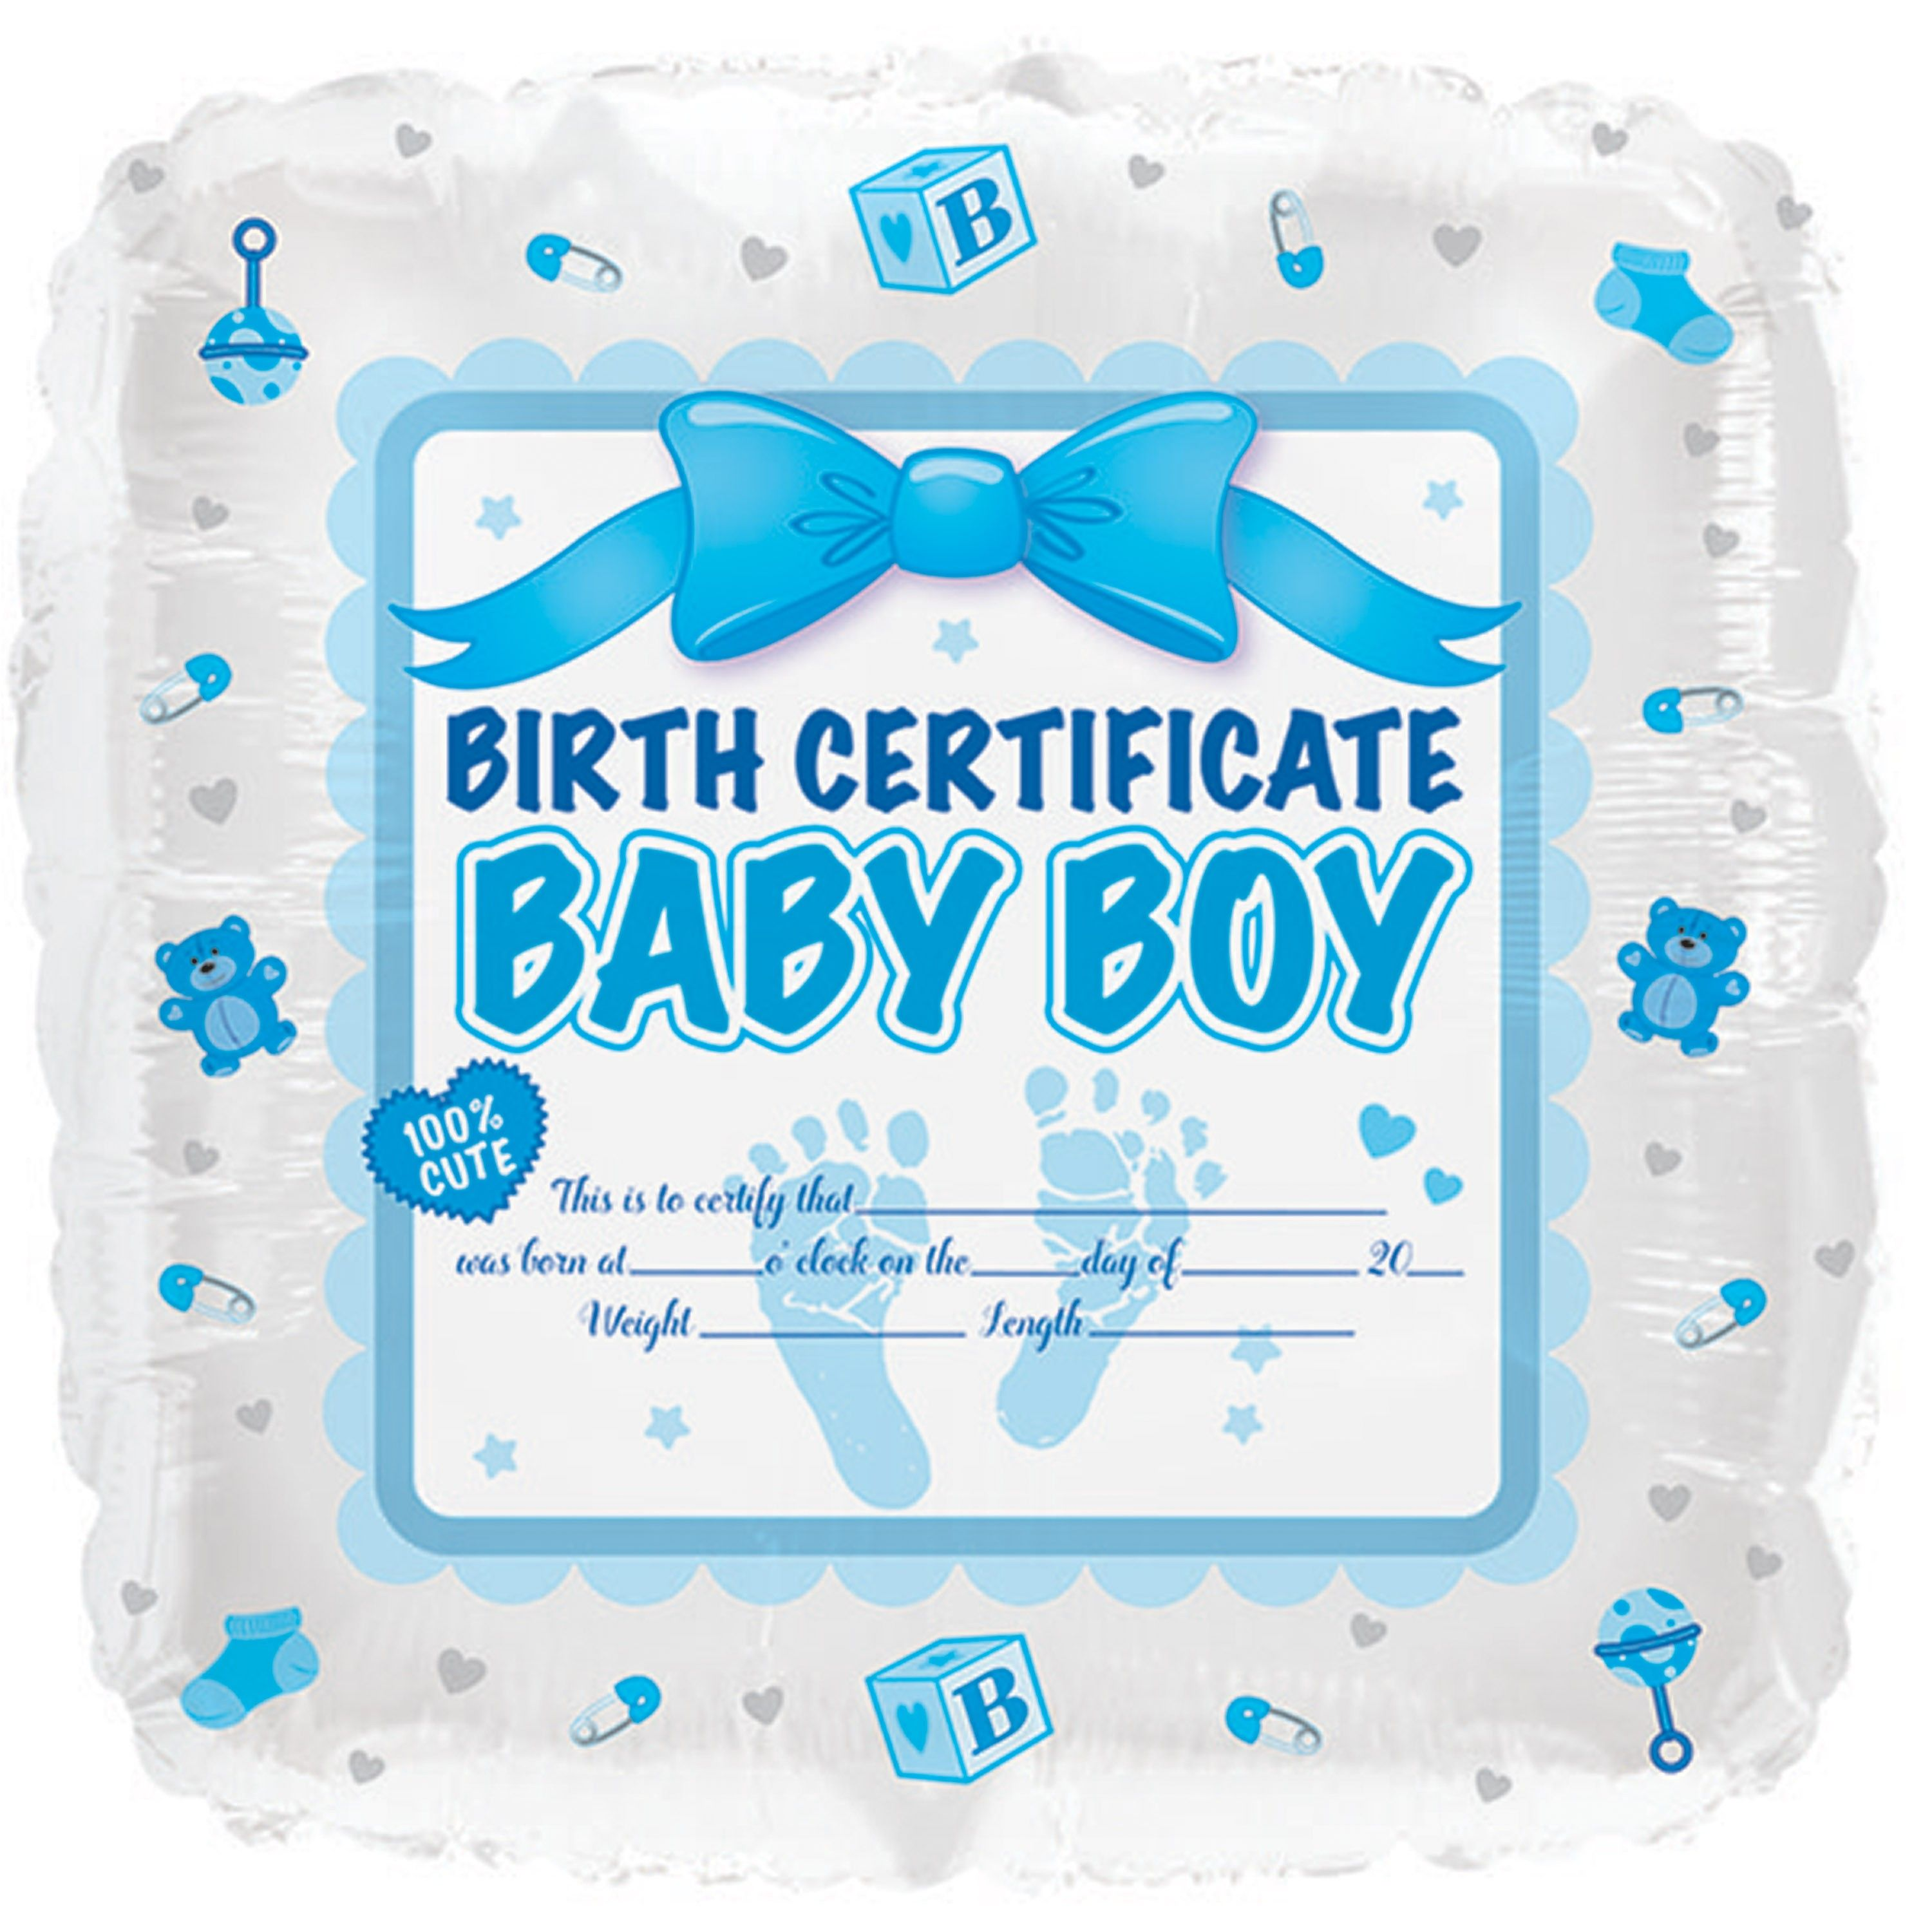 17 baby boy birth certificate foil ballooncase of 5 tags foil 17 baby boy birth certificate foil ballooncase of 5 tags foil balloon aiddatafo Choice Image